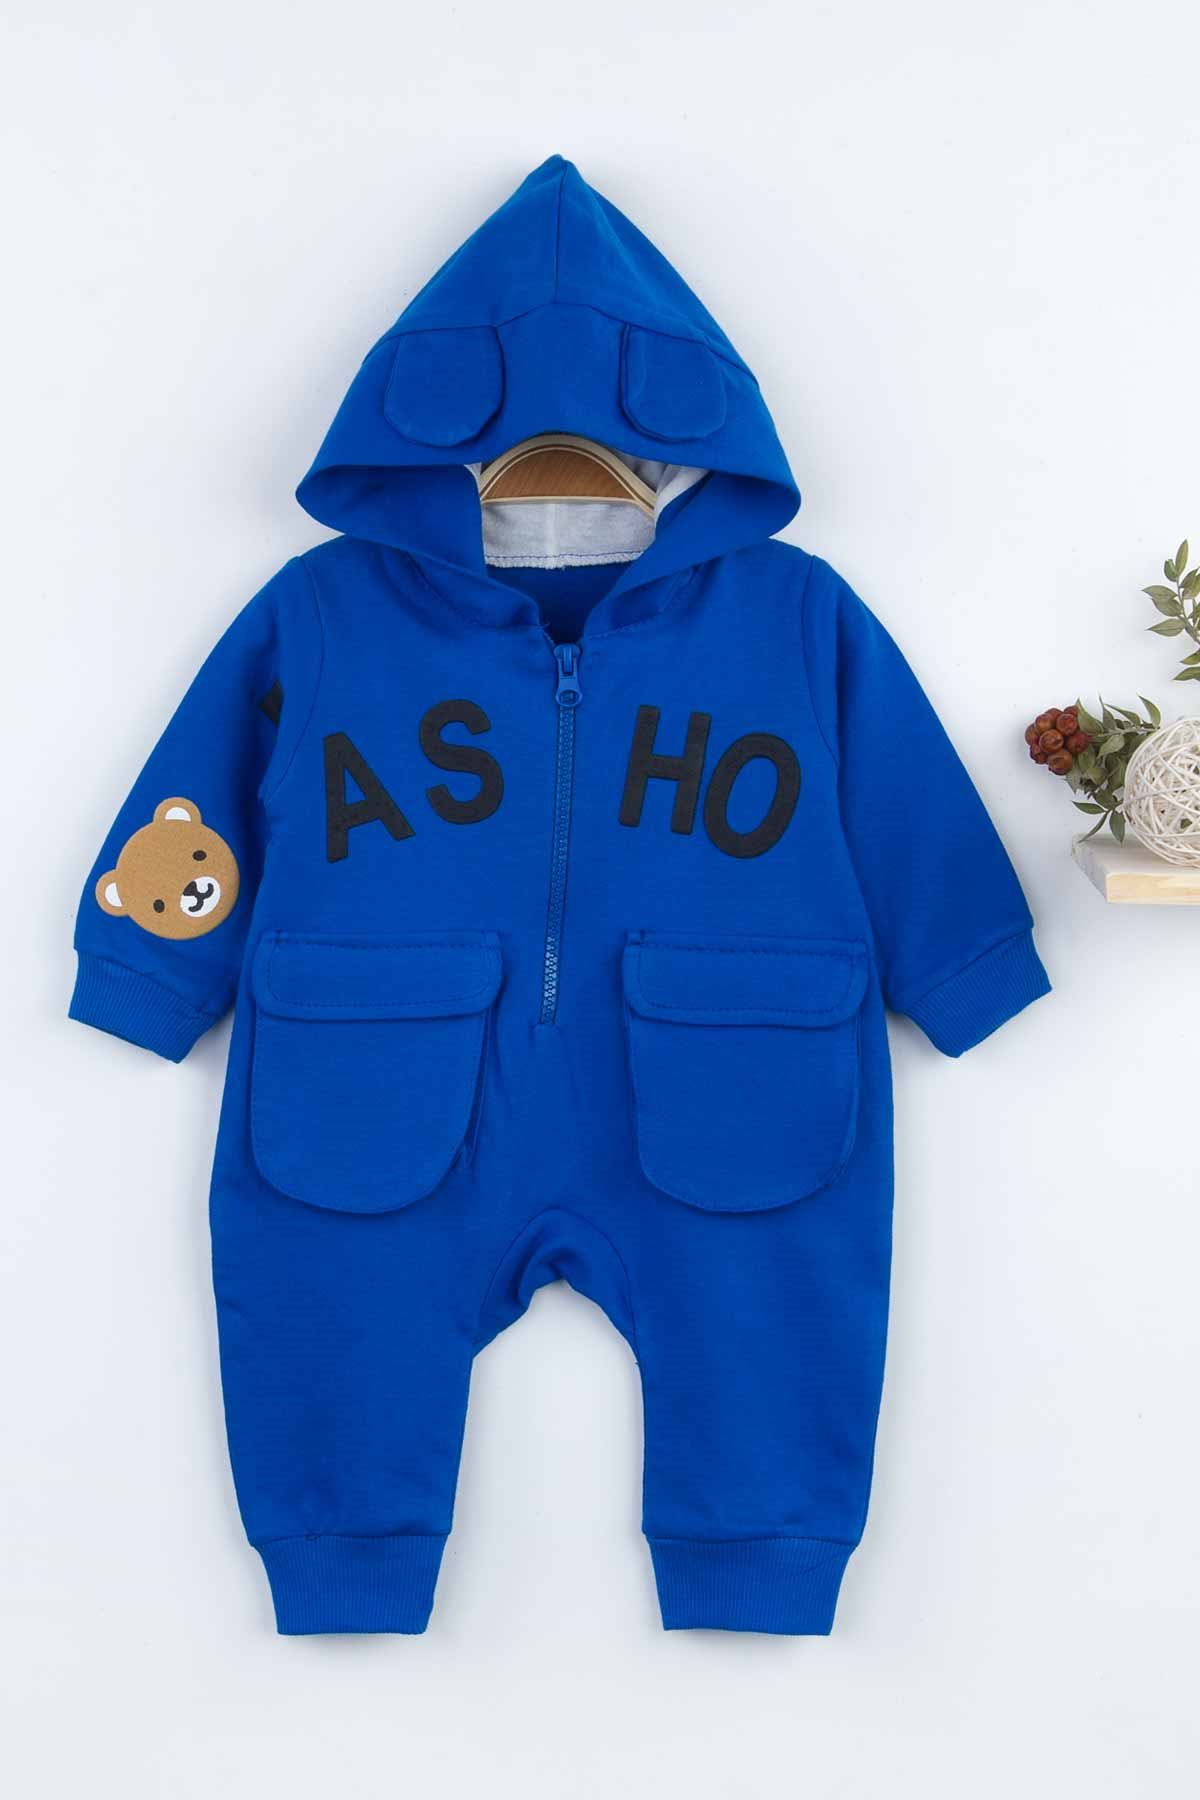 Sax Hooded Baby Boy Rompers Fashion 2021 New Season Style Babies Clothes Outfit Cotton Comfortable Underwear for Boys Baby Models